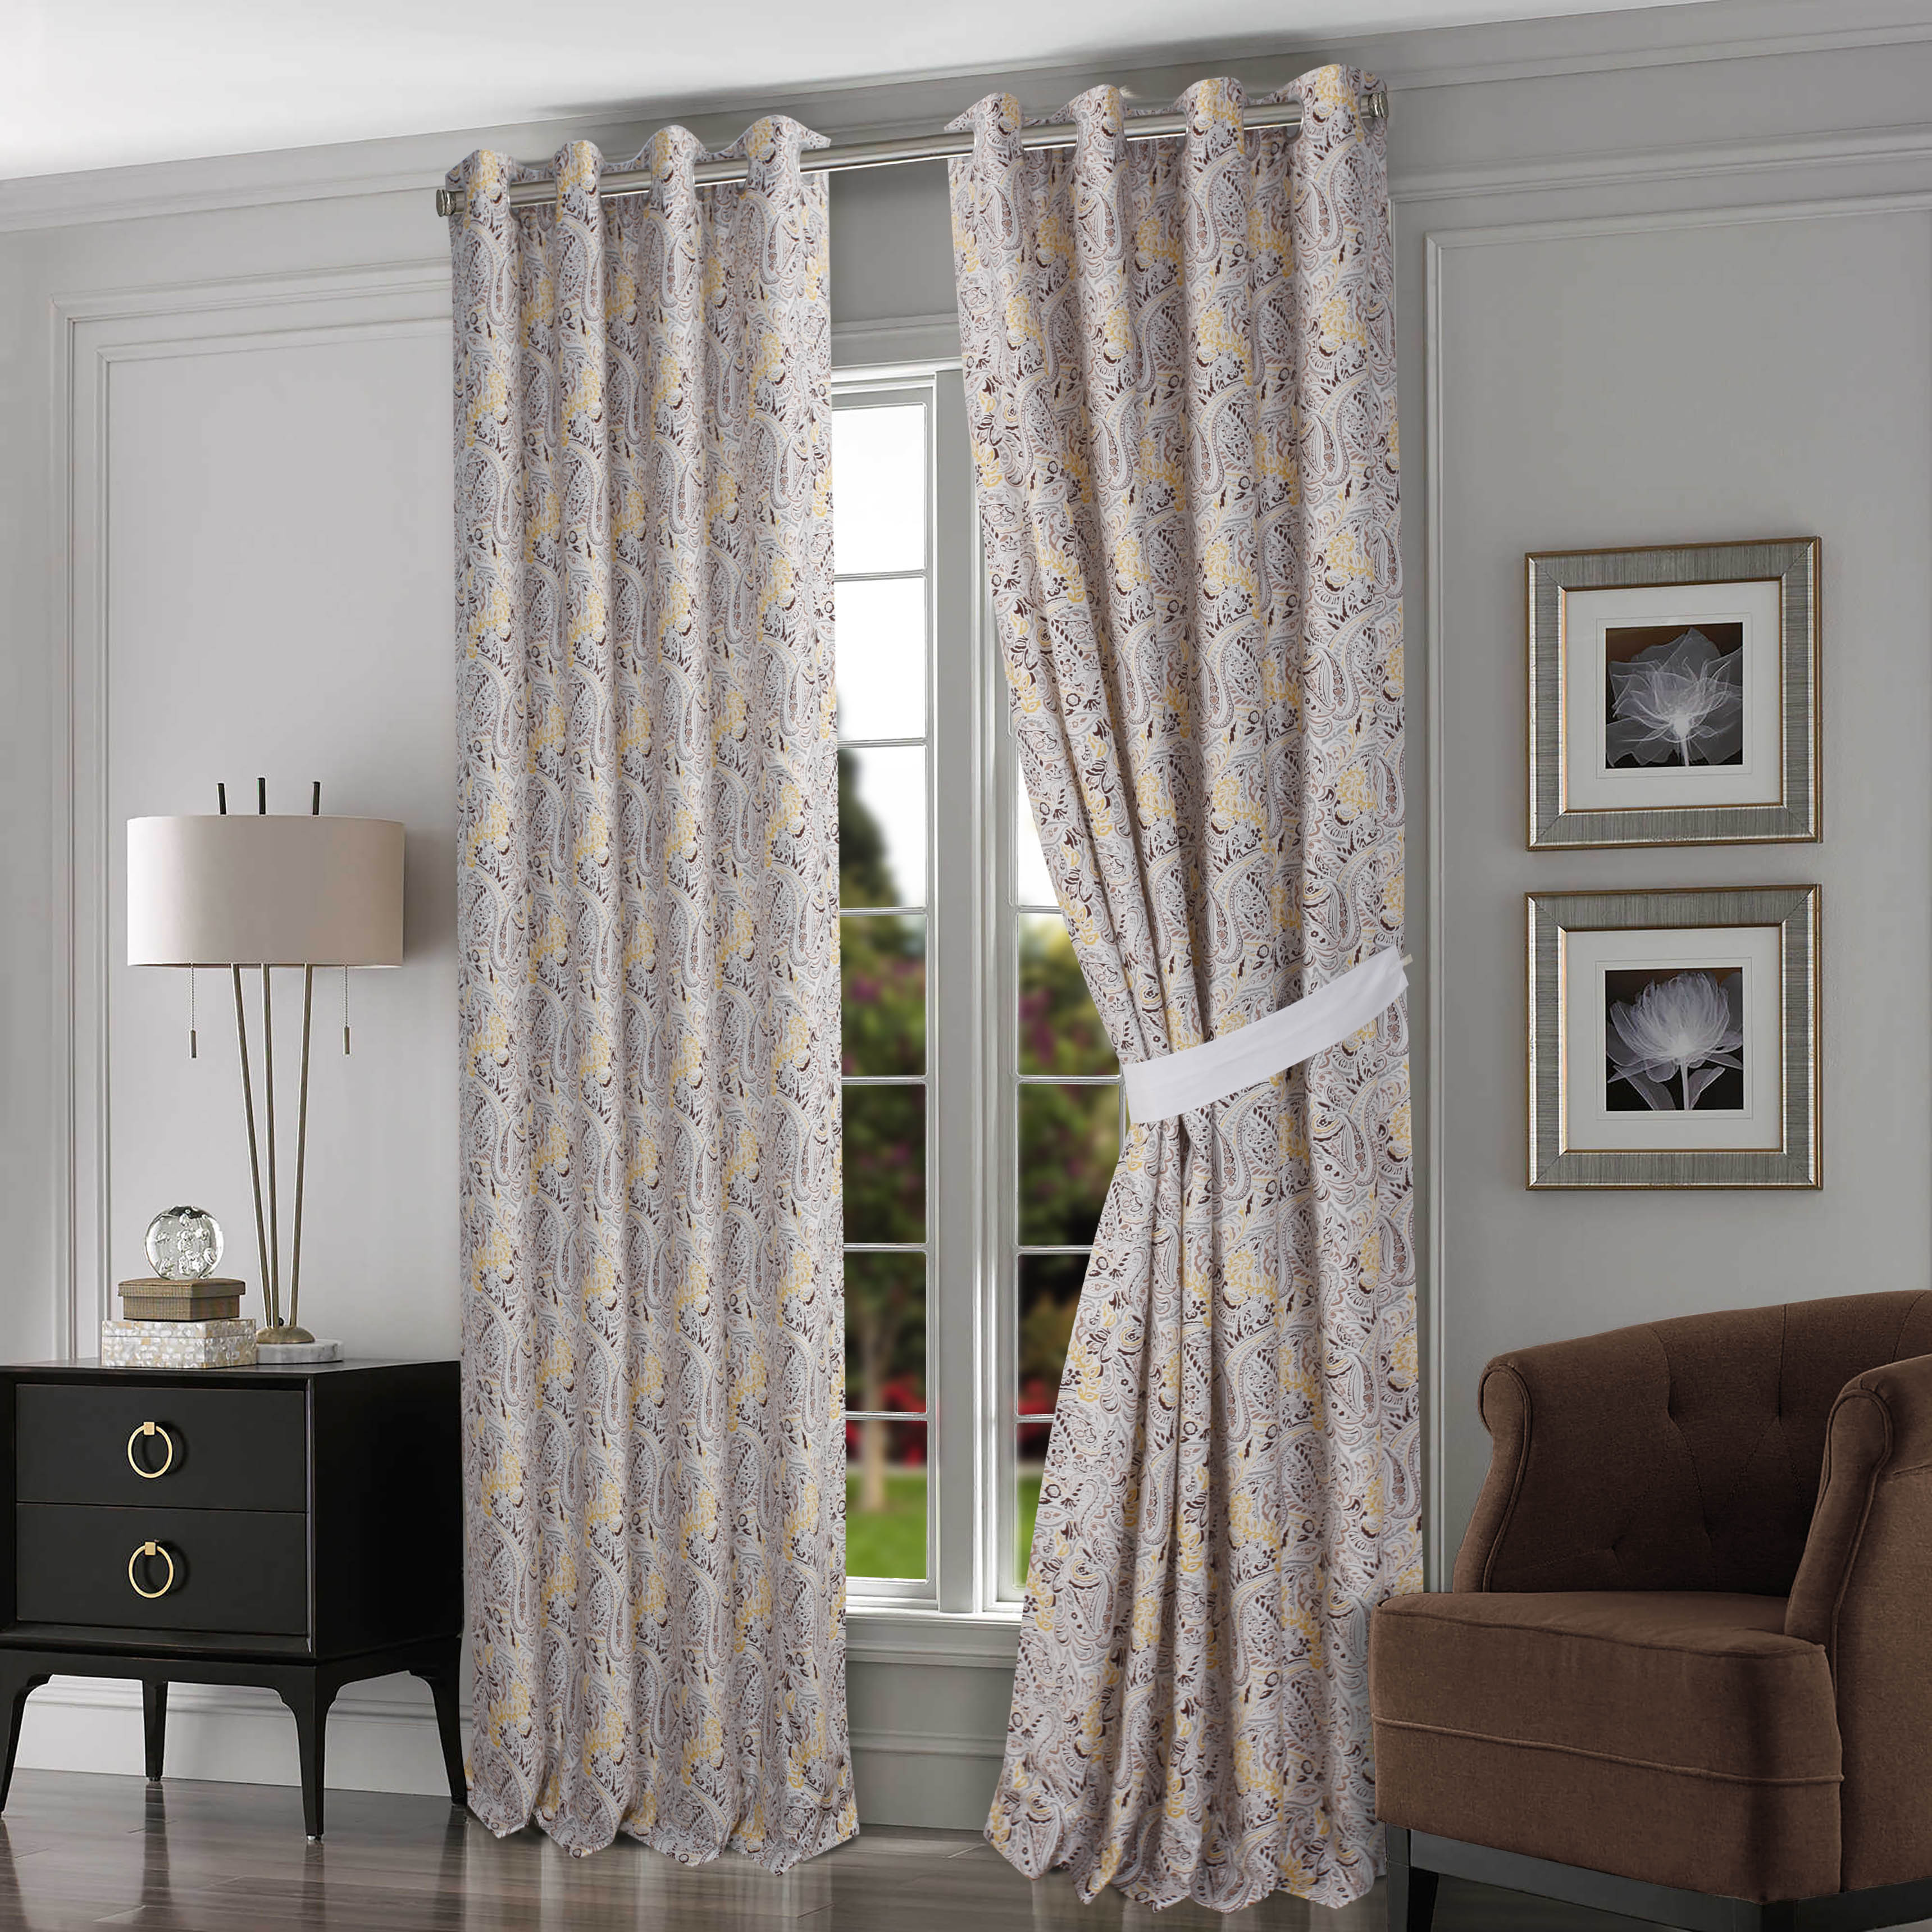 How To Make Lined Curtain Panels Fiji Chocolate Grey Cotton Lined Curtain Panel Pair With Tiebacks